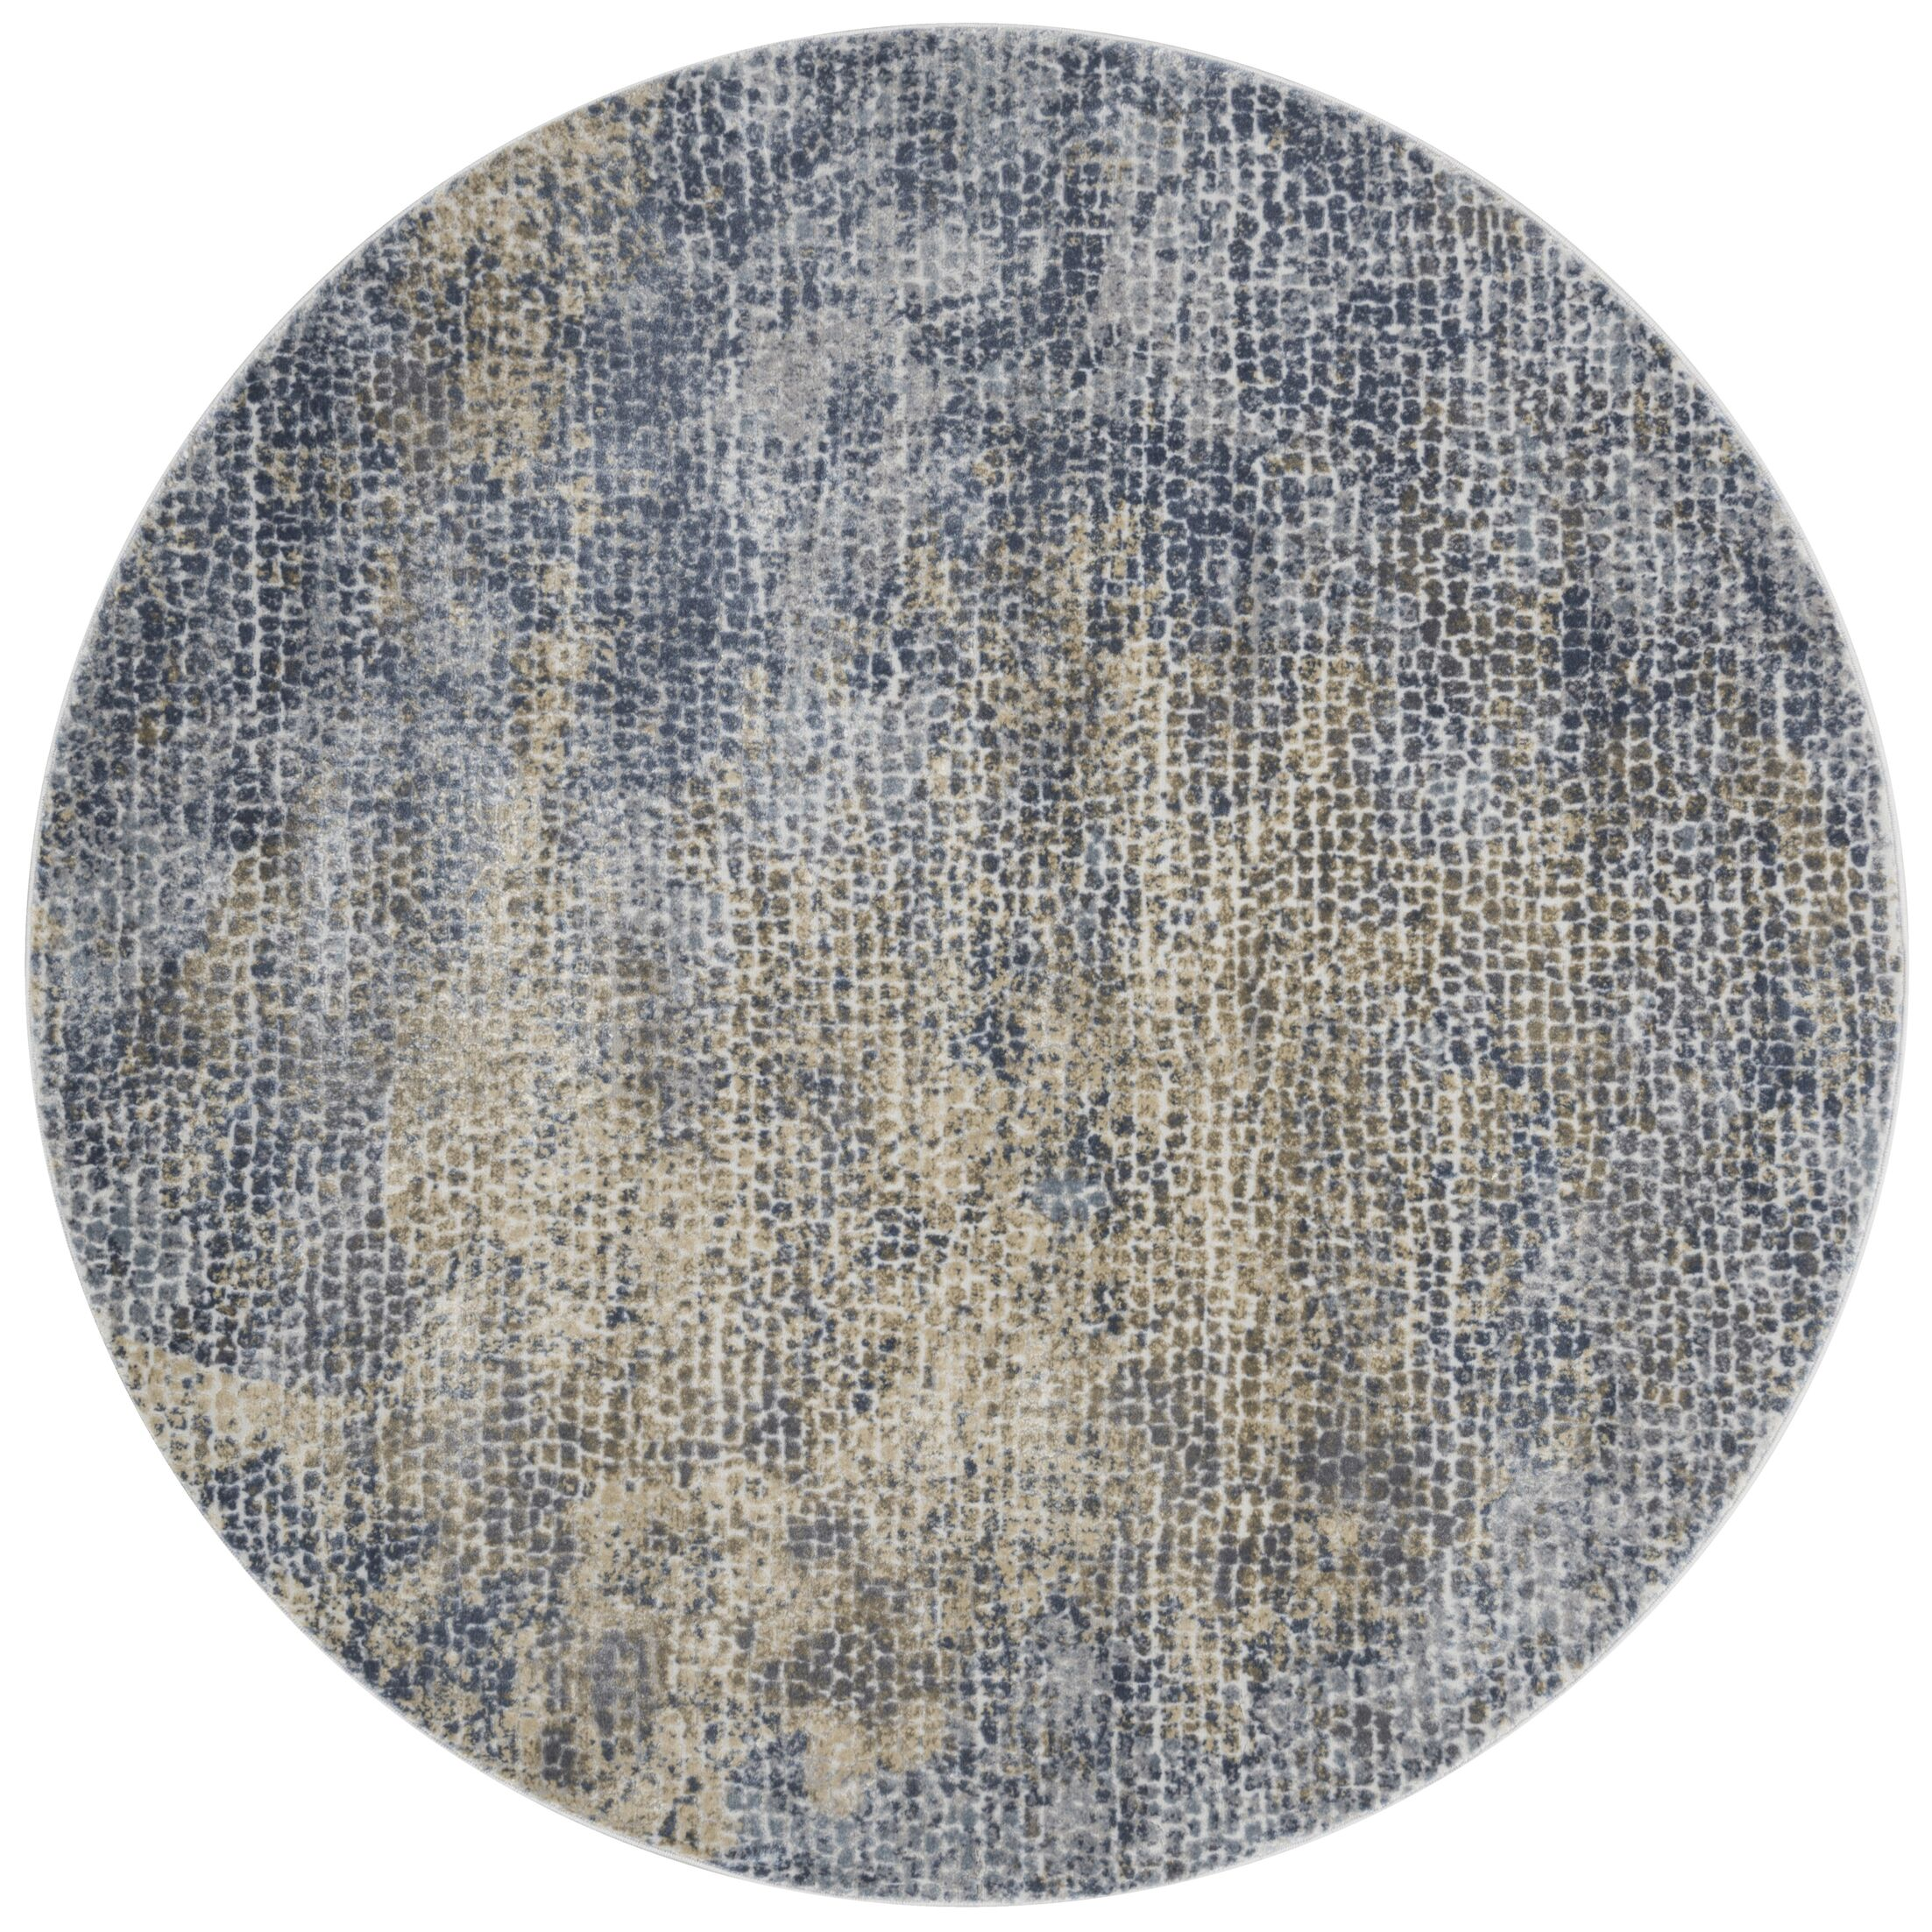 Bouton Ocean/Gold Area Rug Rug Size: Round 5'3